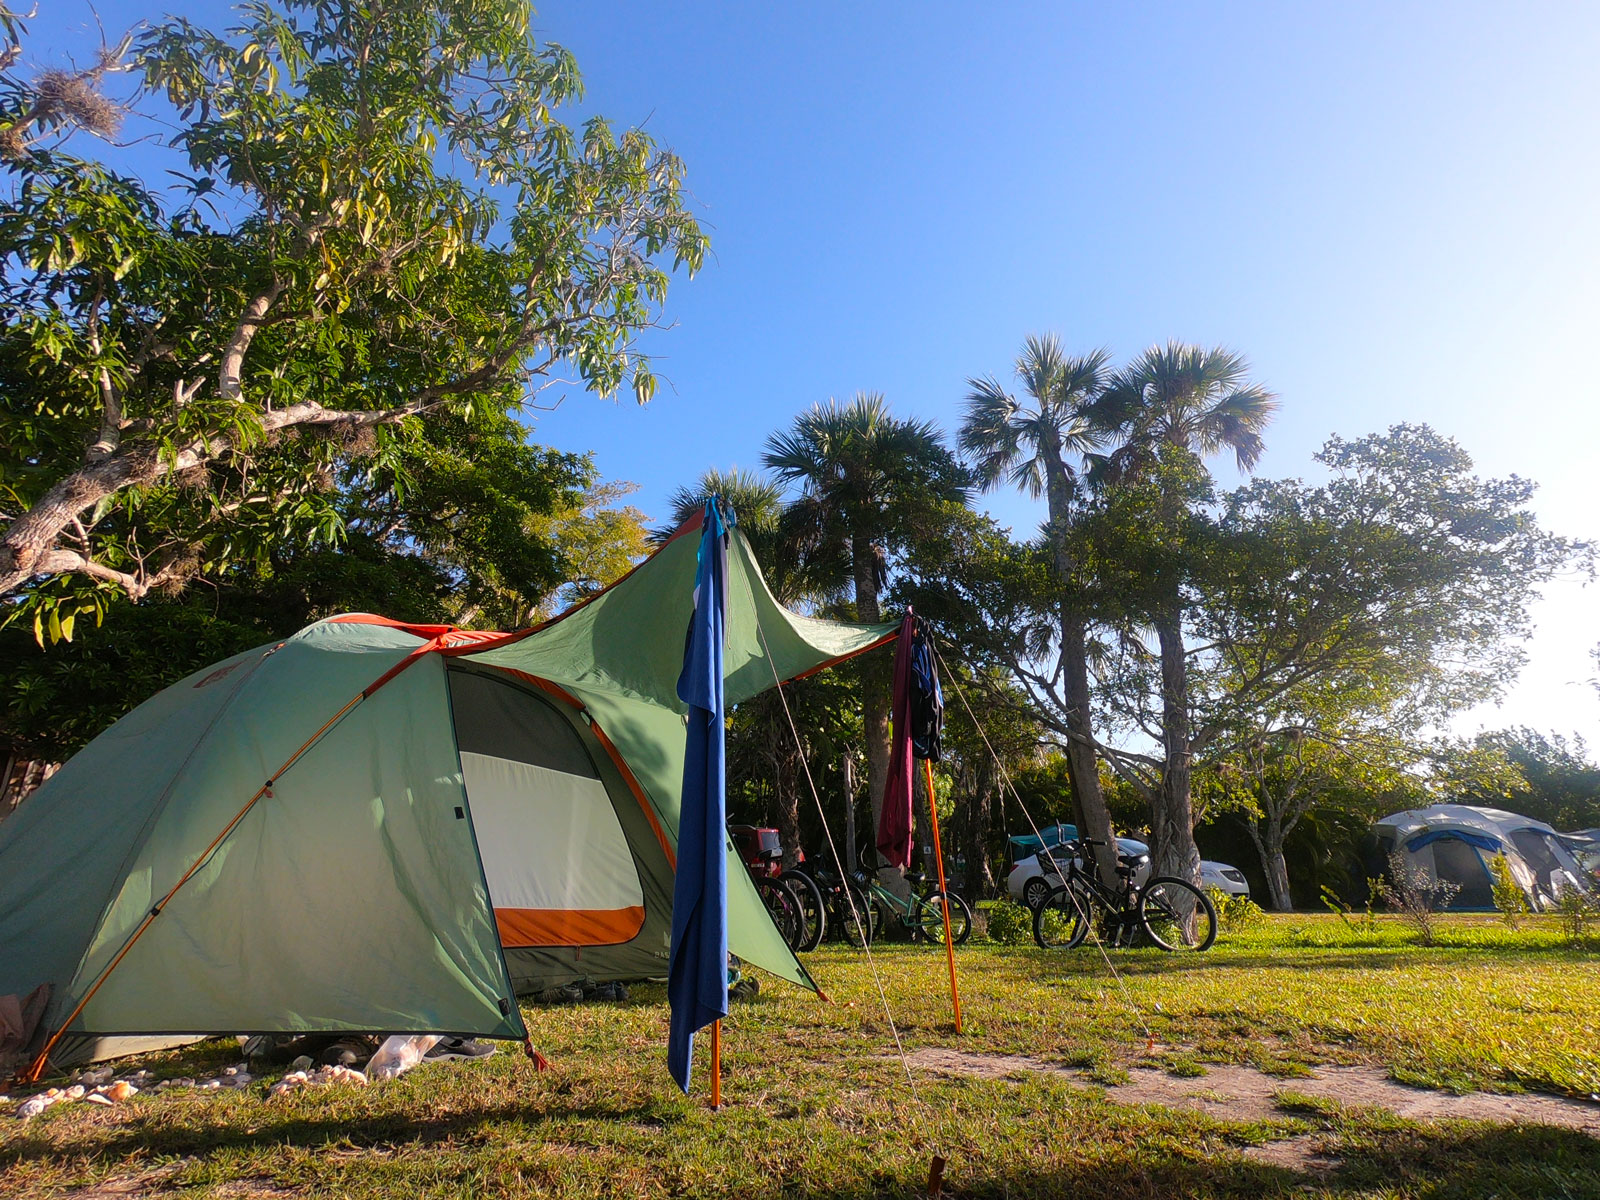 Tent and bikes at Periwinkle Park and Campground, Sanibel Island, Florida